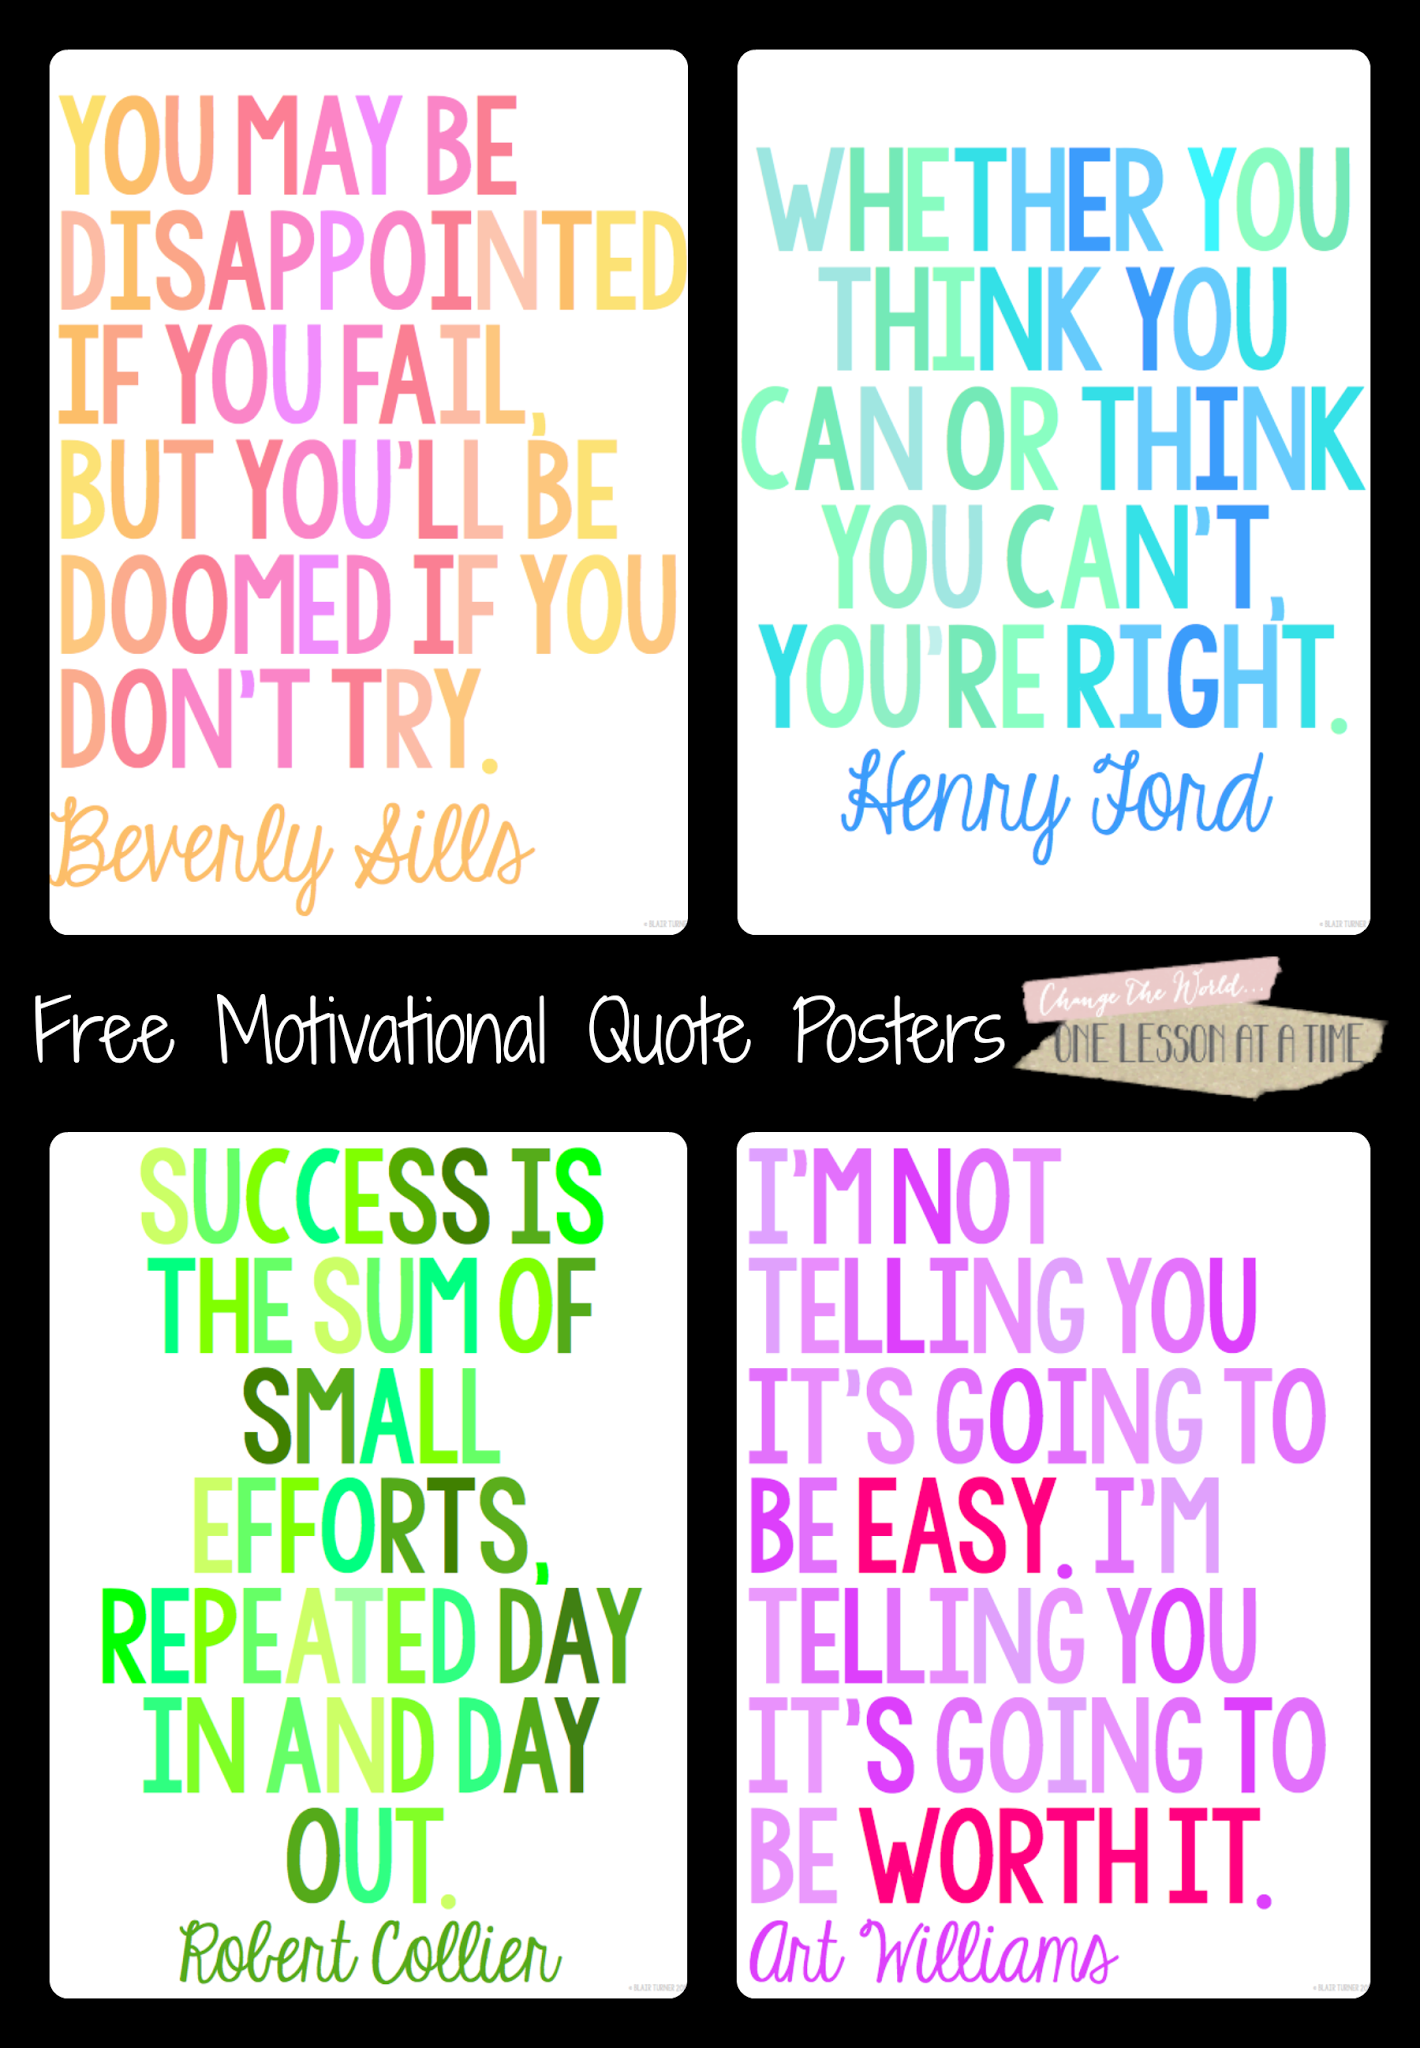 Motivational Quotes For State Testing Free Posters